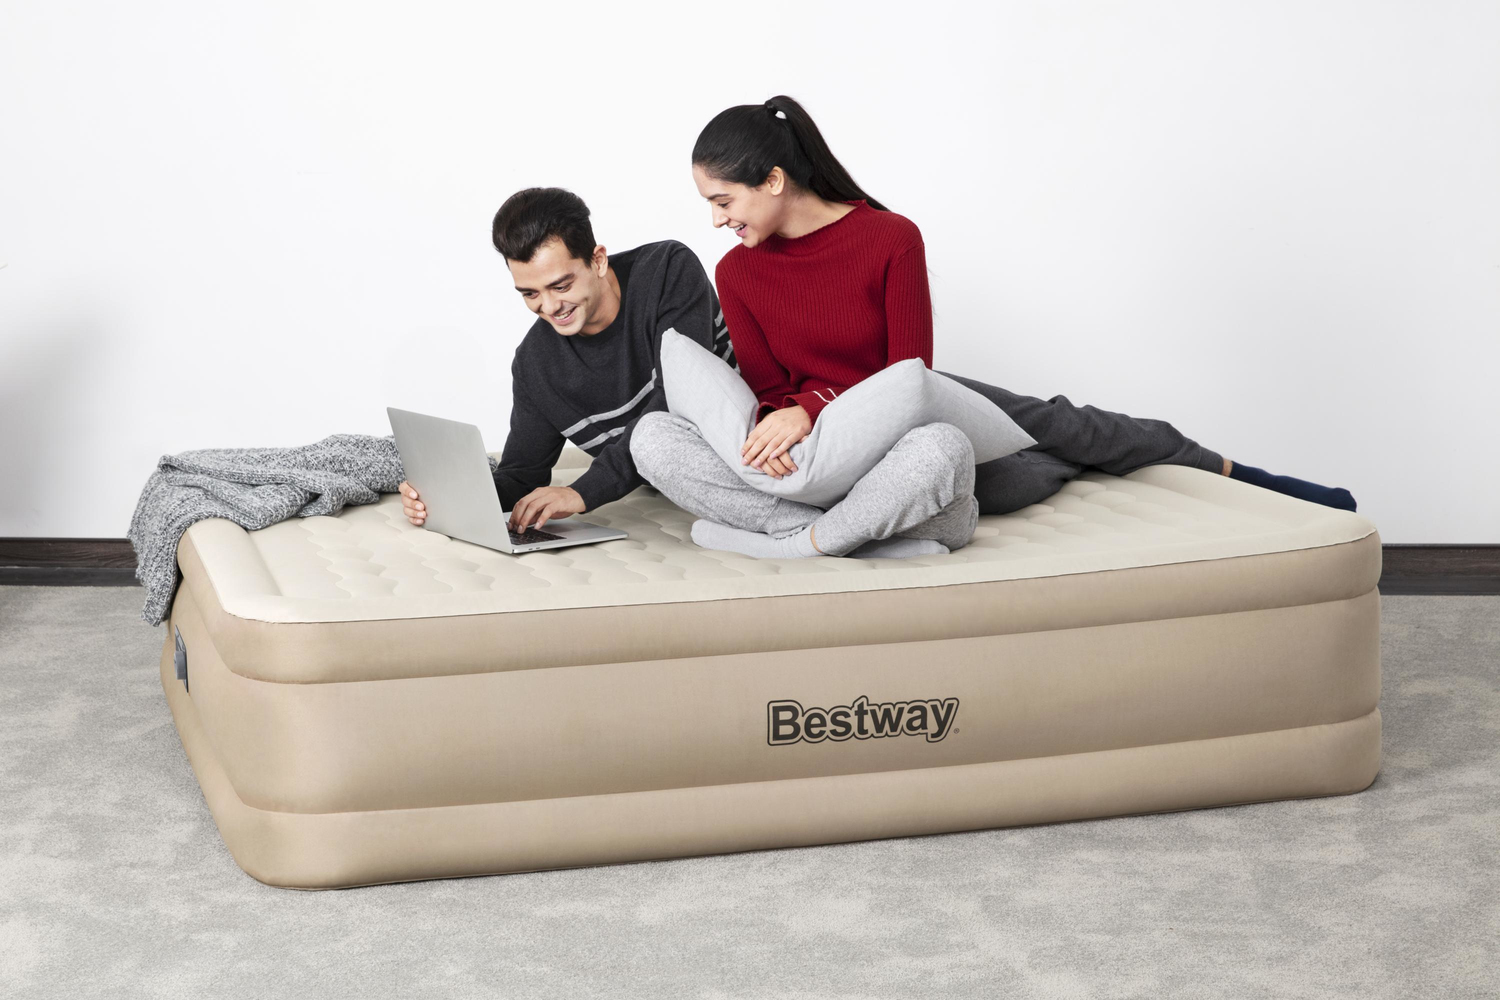 Bestway Fortech Airbed Queen Built-in AC Pump